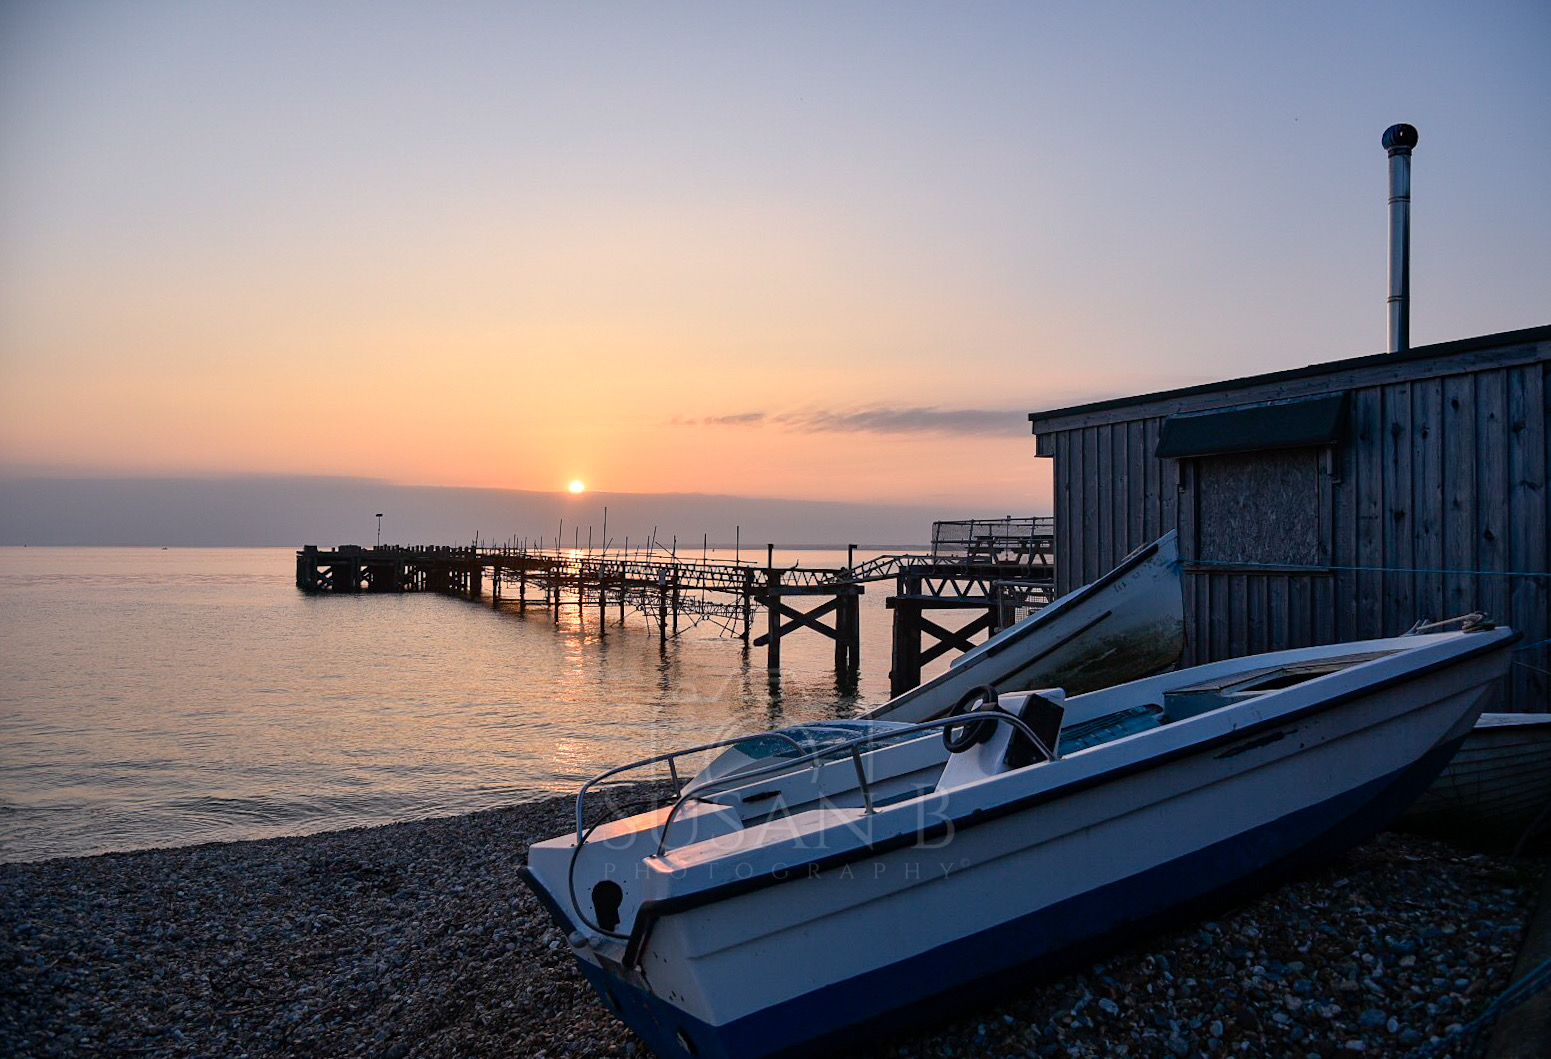 Boats at Totland Pier